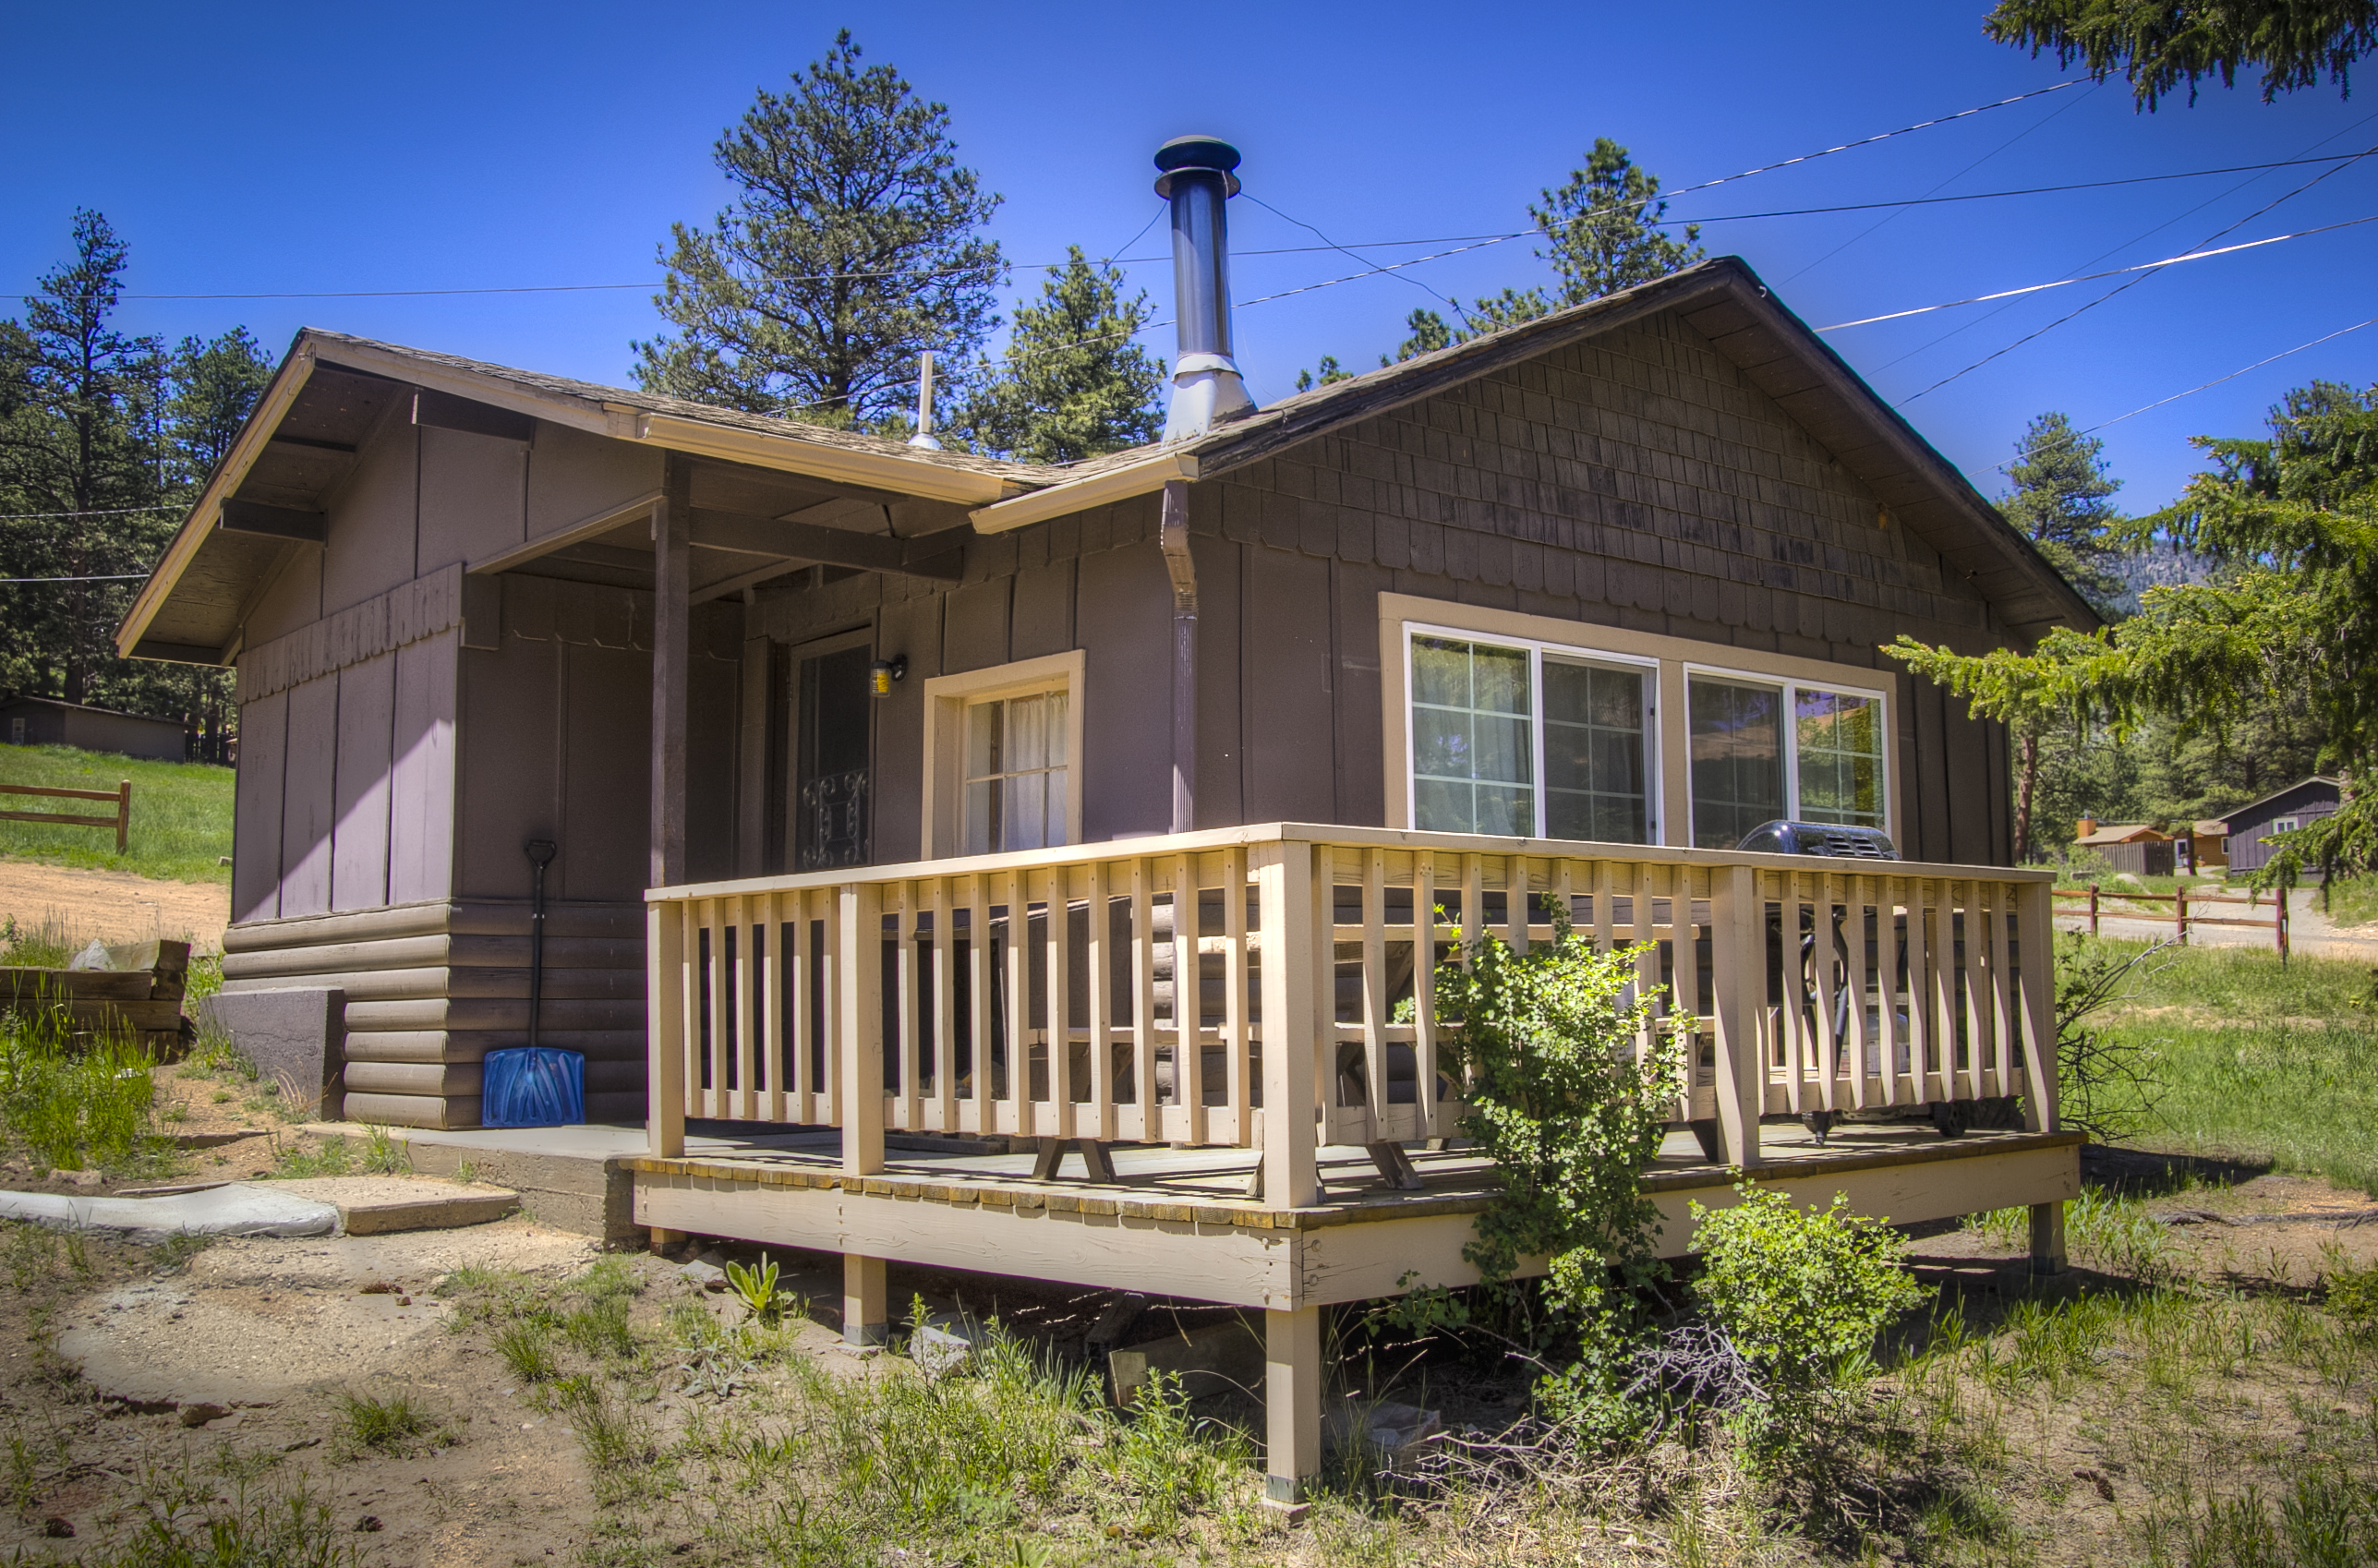 estes az near tx antonio sale cabins in payson camping park arkansas co san for colorado